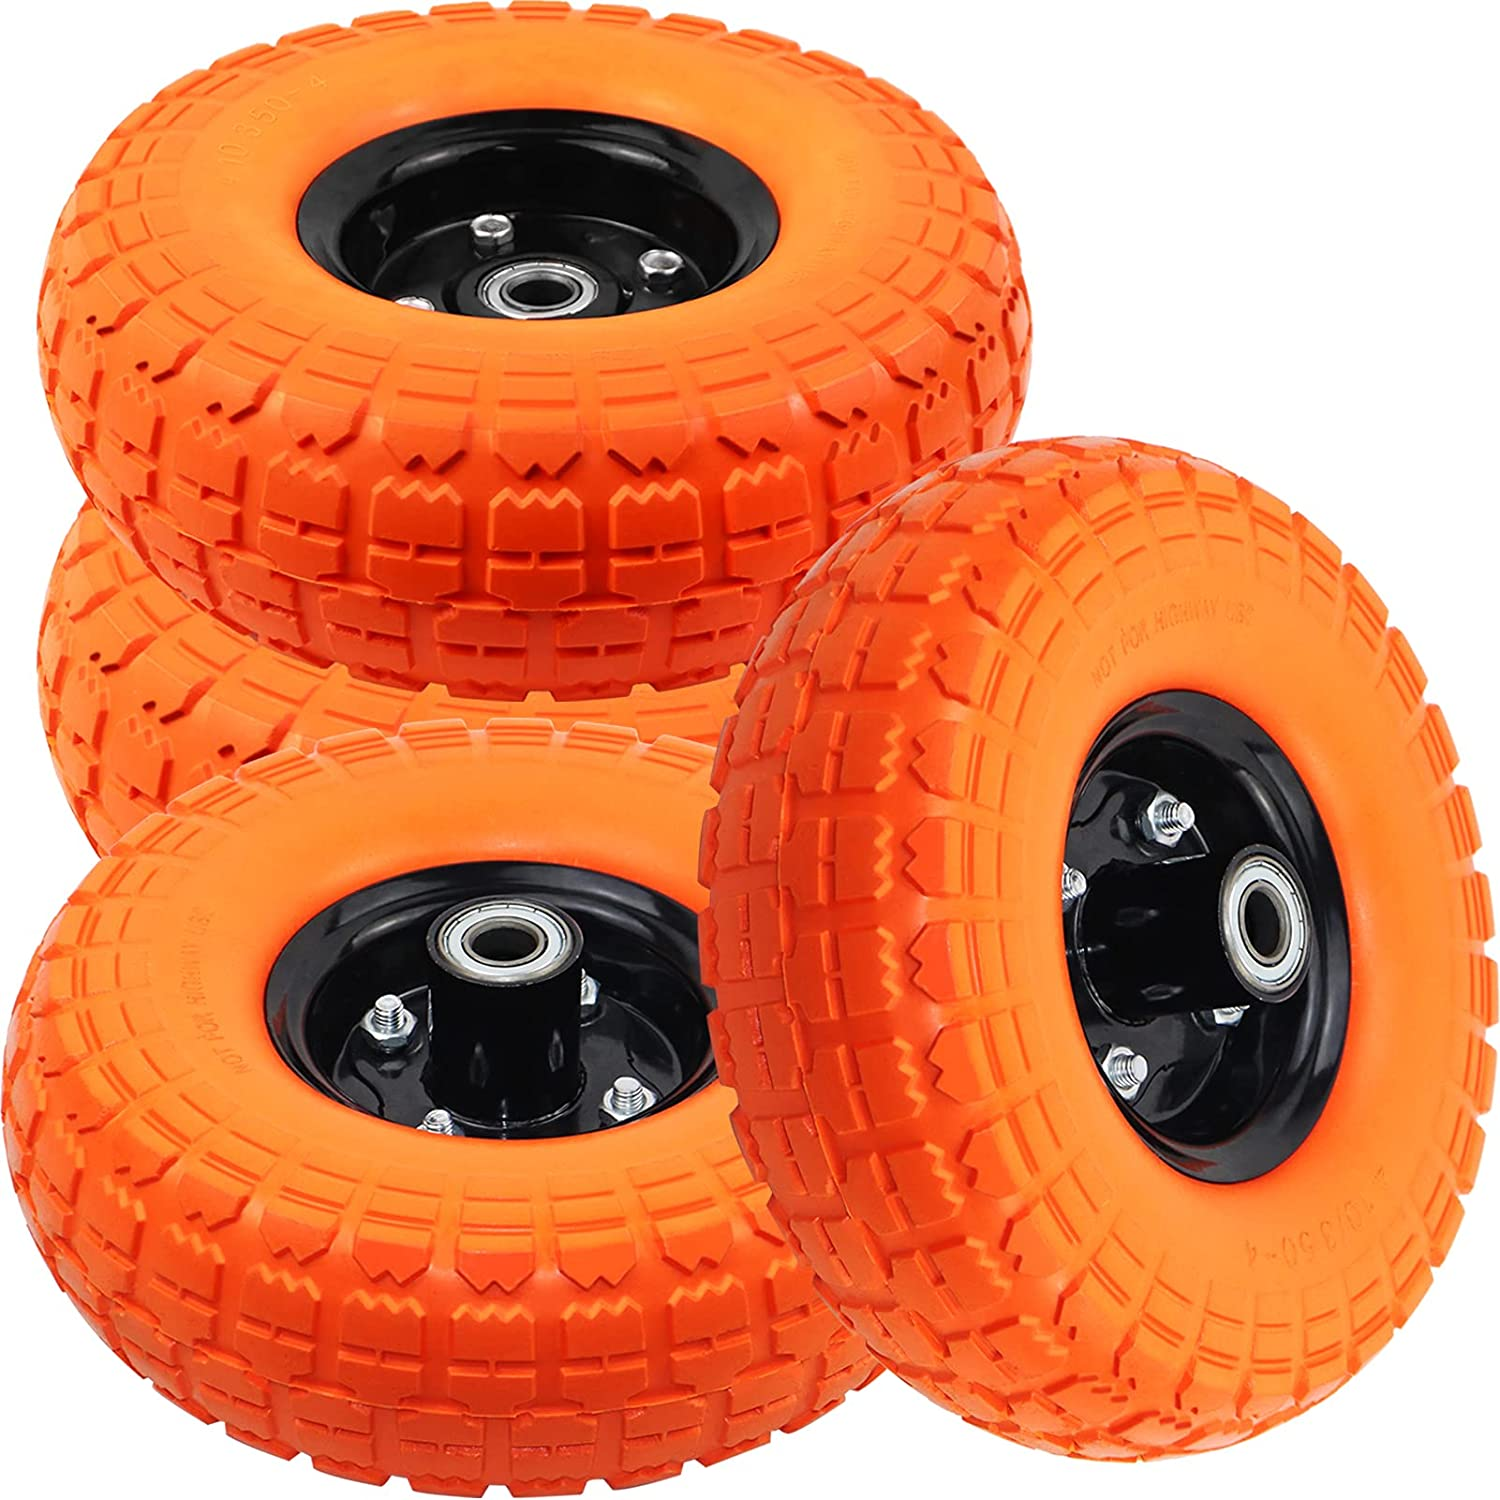 Lococee Tyre Wheels - Best For Wet Weather